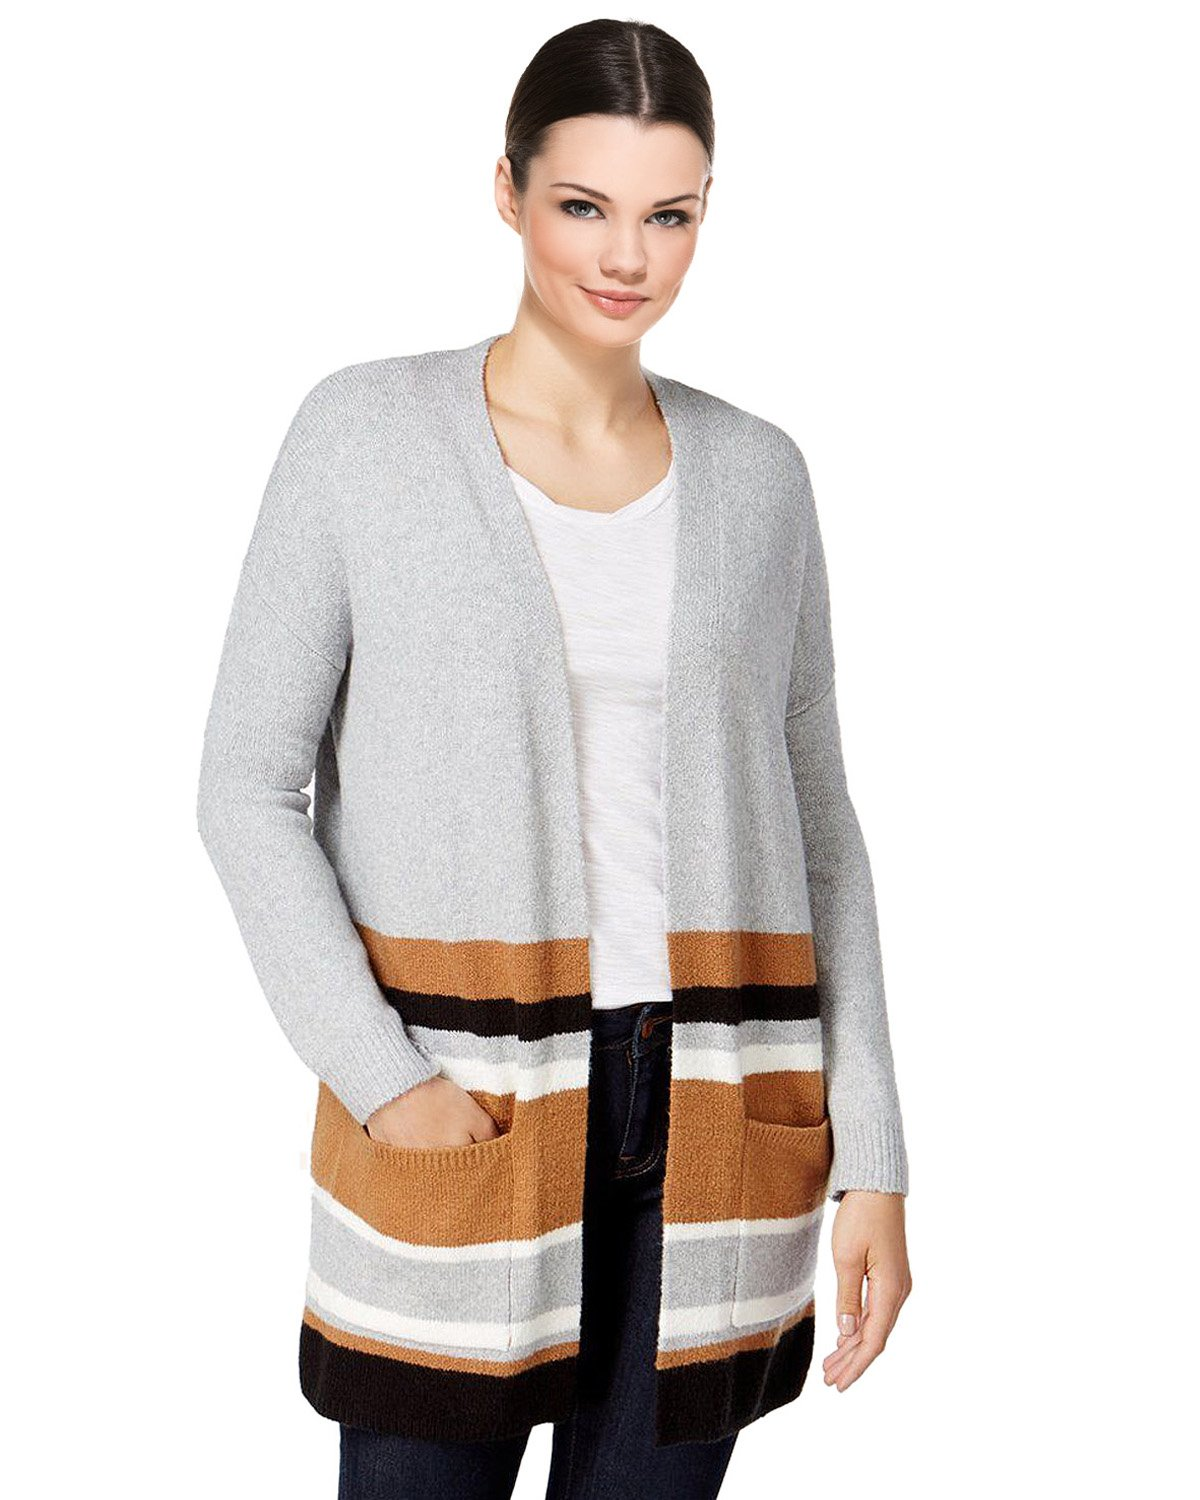 Style & Co. Striped Colorblocked Sweater Cardigan by Style & Co.